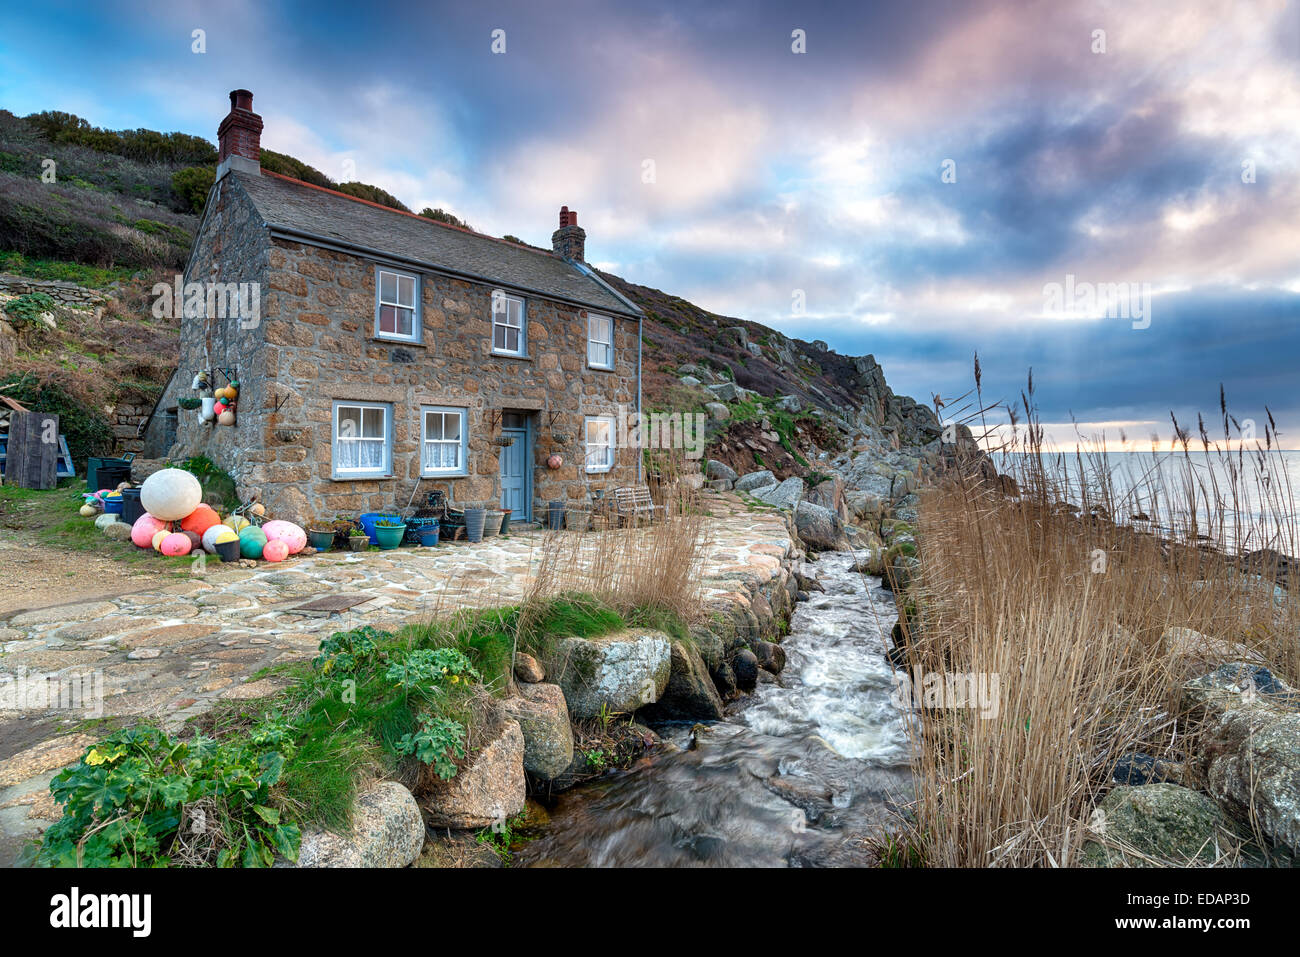 Old fisherman 39 s cottage on the south west coast path at penberth stock photo royalty free image - The fishermans cottage ...